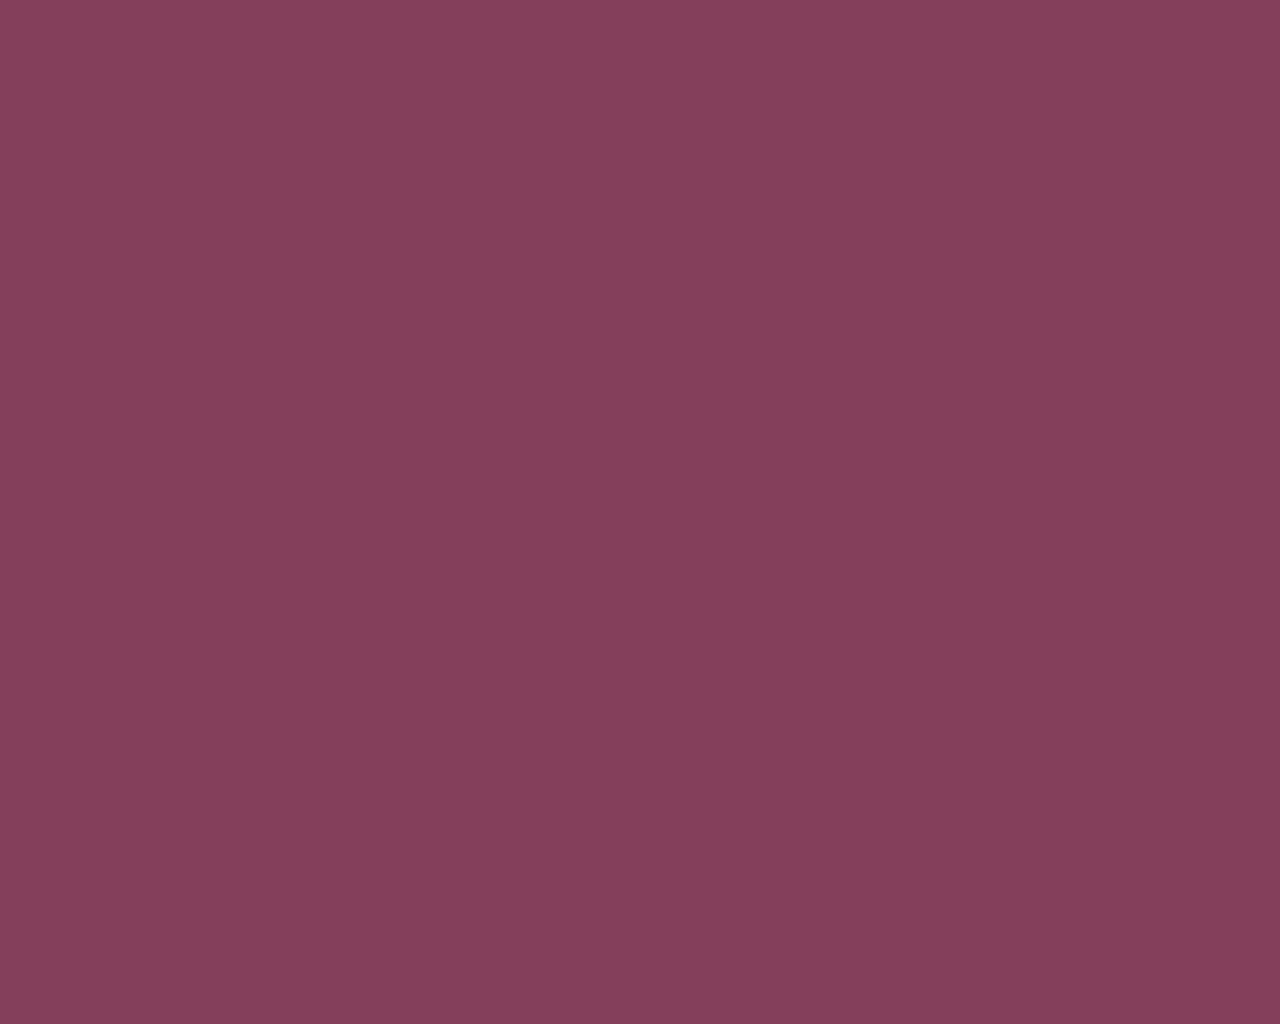 1280x1024 Deep Ruby Solid Color Background